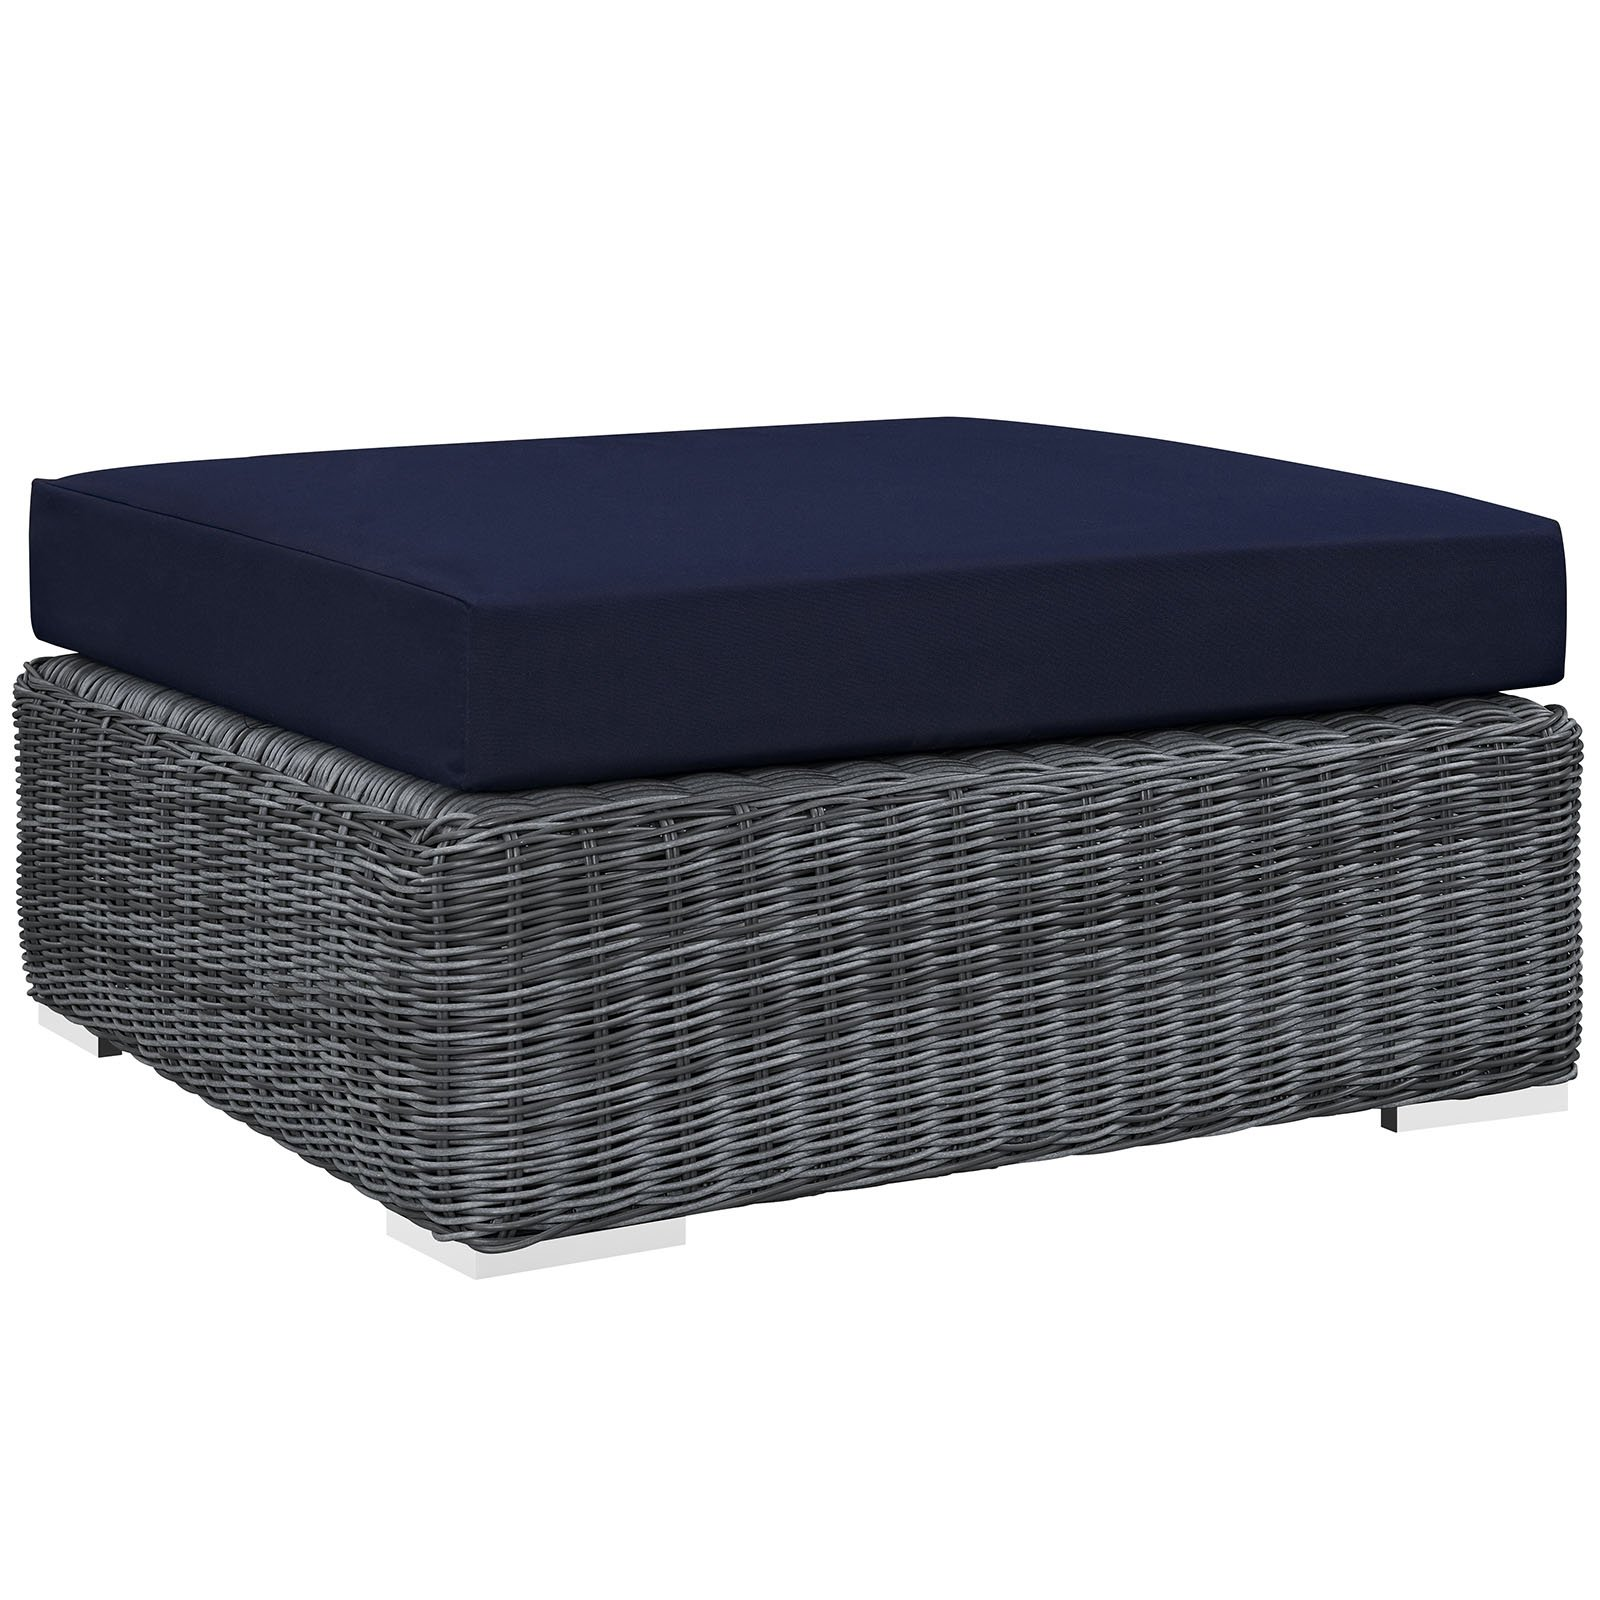 Modway Summon Outdoor Patio Sunbrella Square Ottoman, Multiple Colors